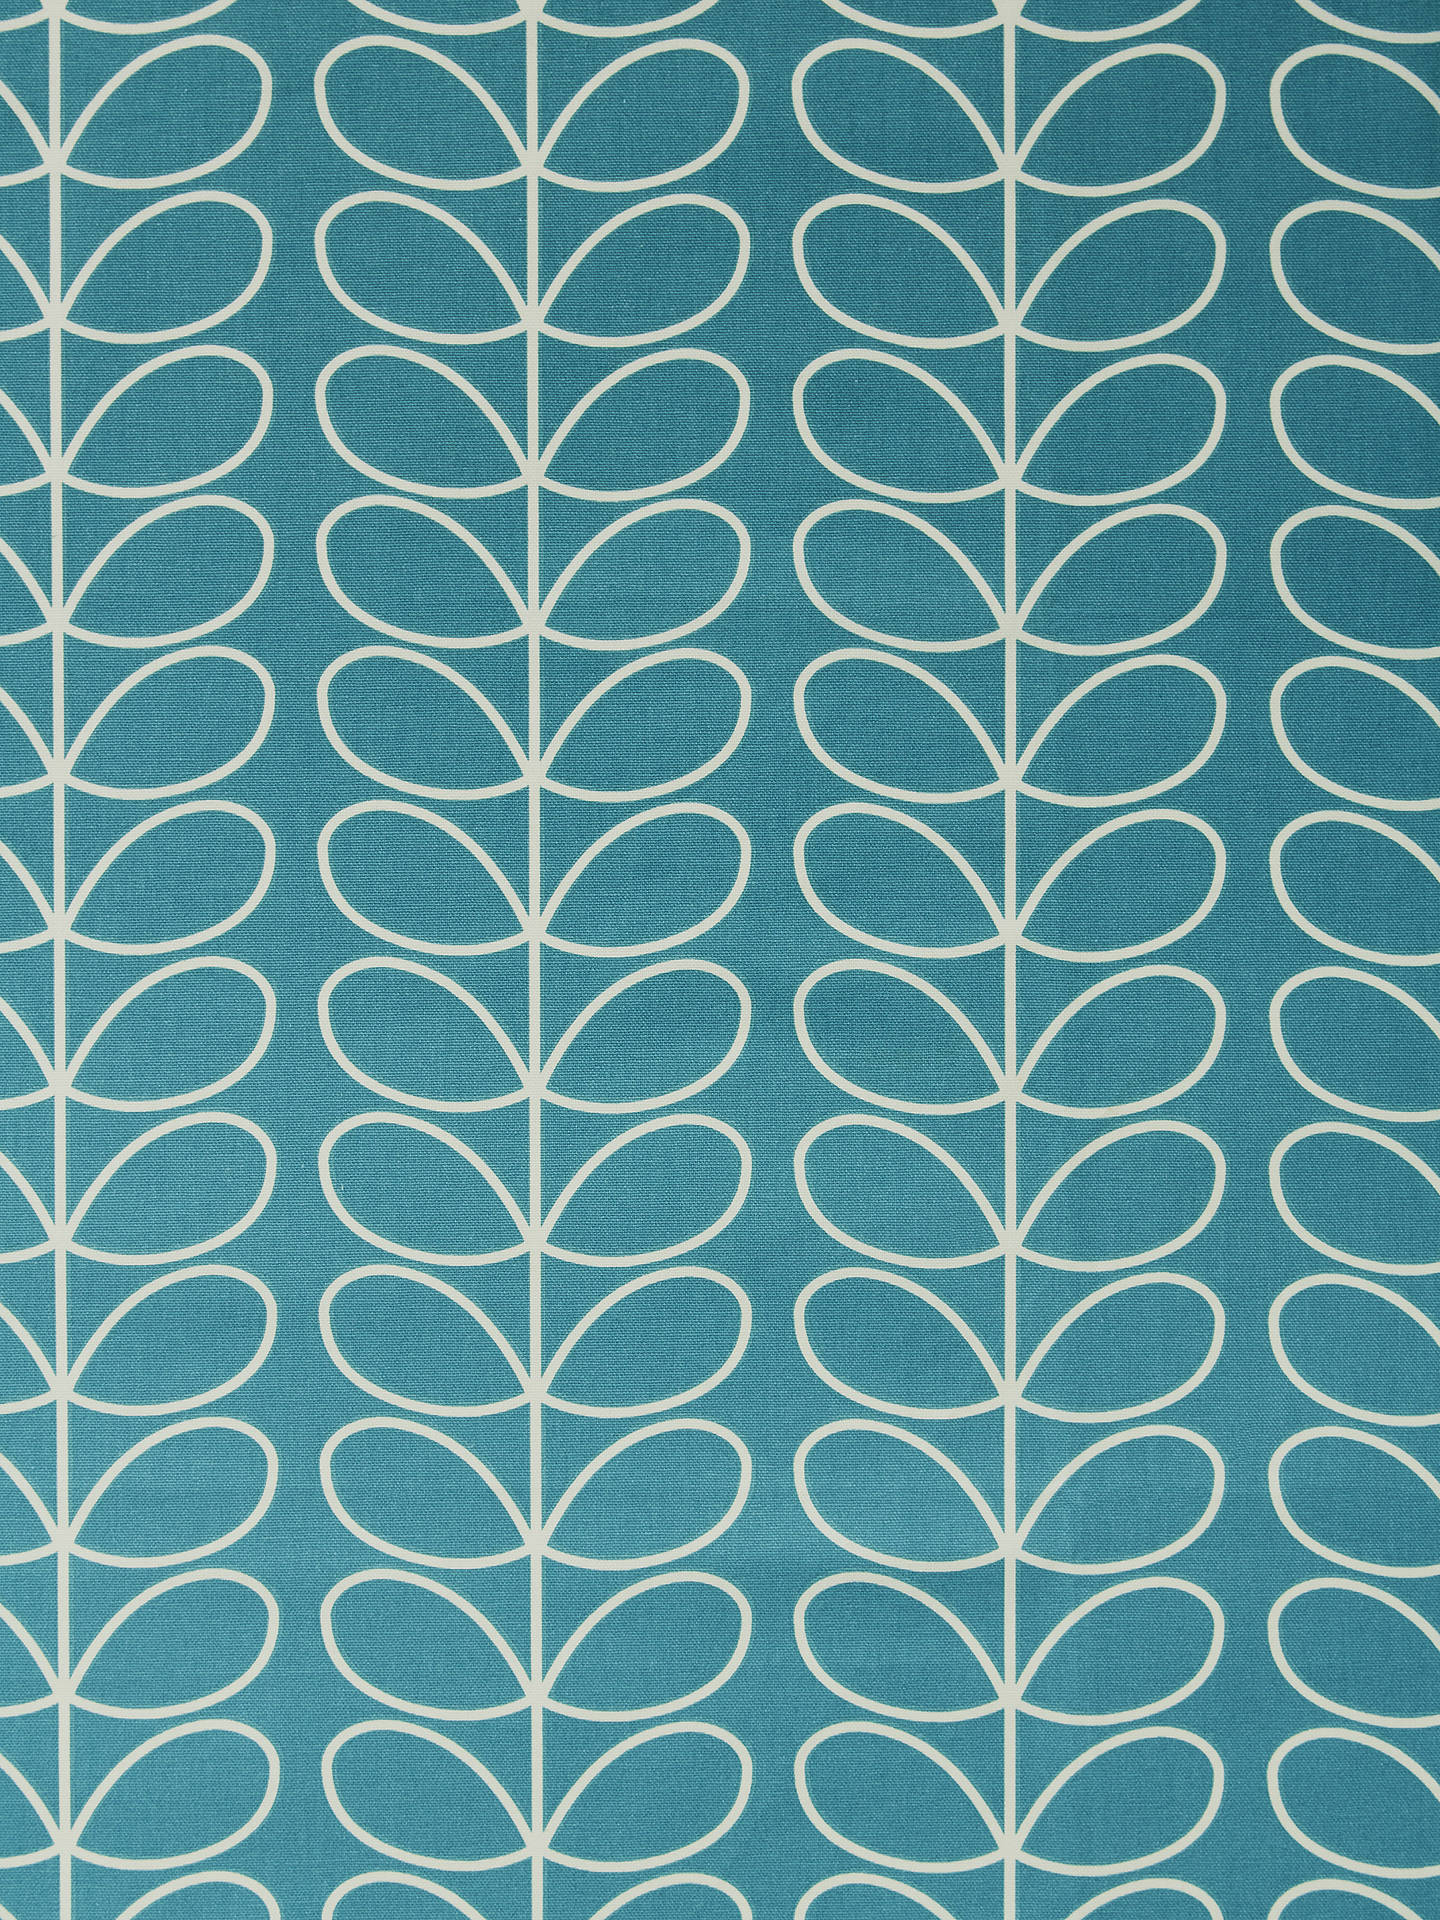 Buy Orla Kiely Linear Stem Furnishing Fabric, Deep Duck Egg Online at johnlewis.com